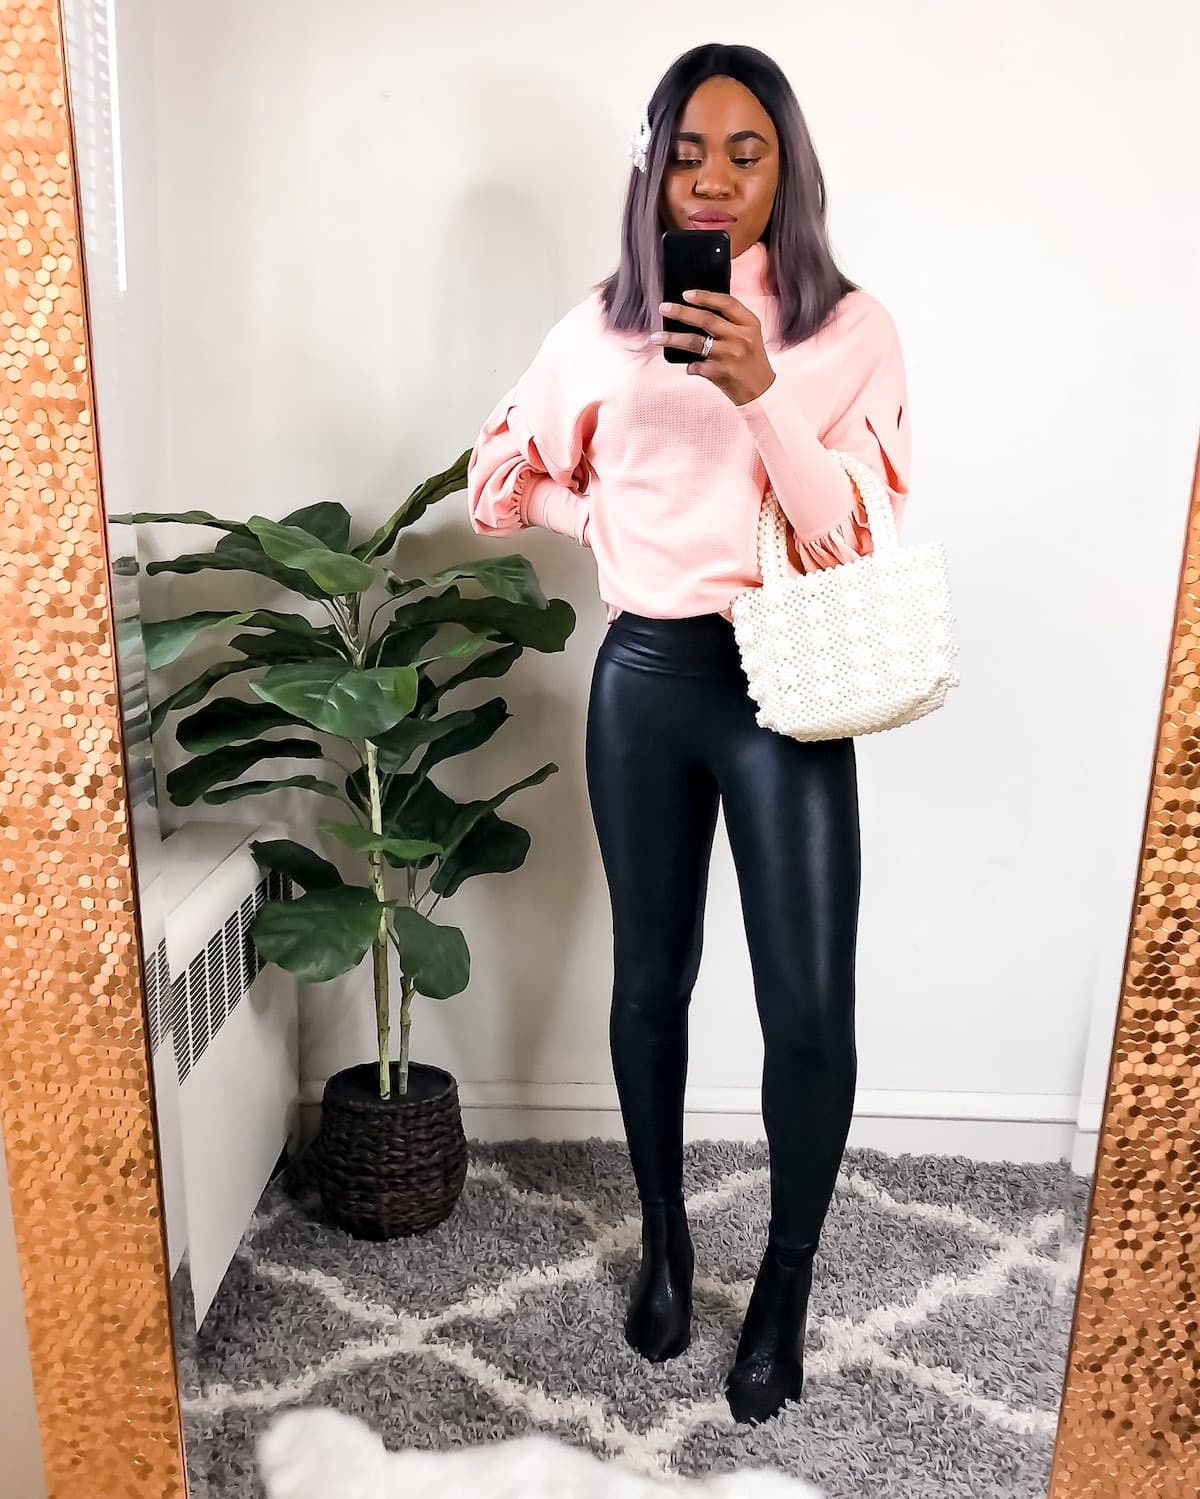 Knitwear and leather leggings outfit